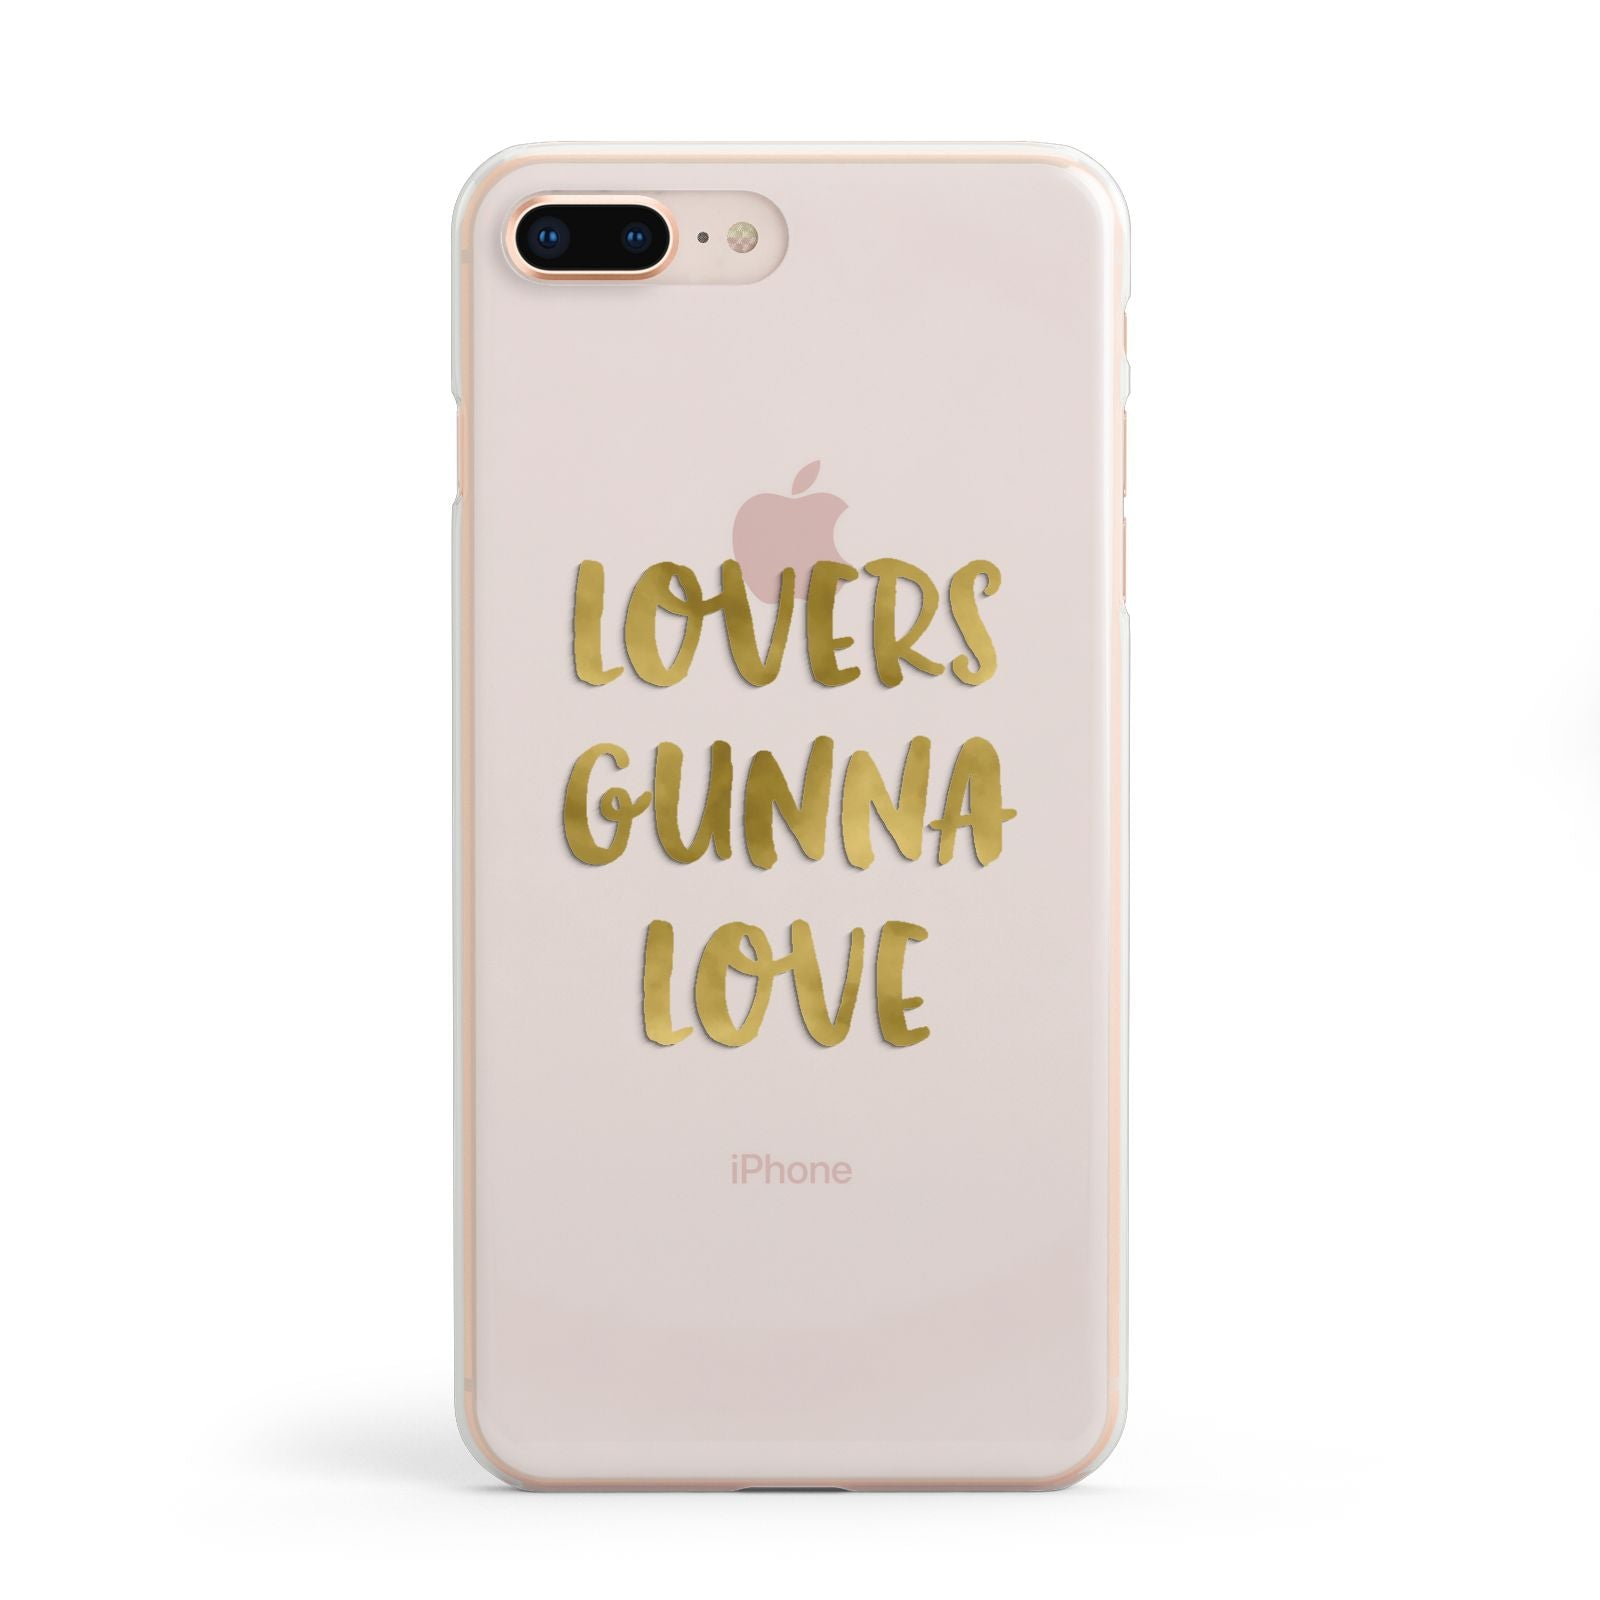 Lovers Gunna Love Real Gold Foil Apple iPhone 8 Plus Case